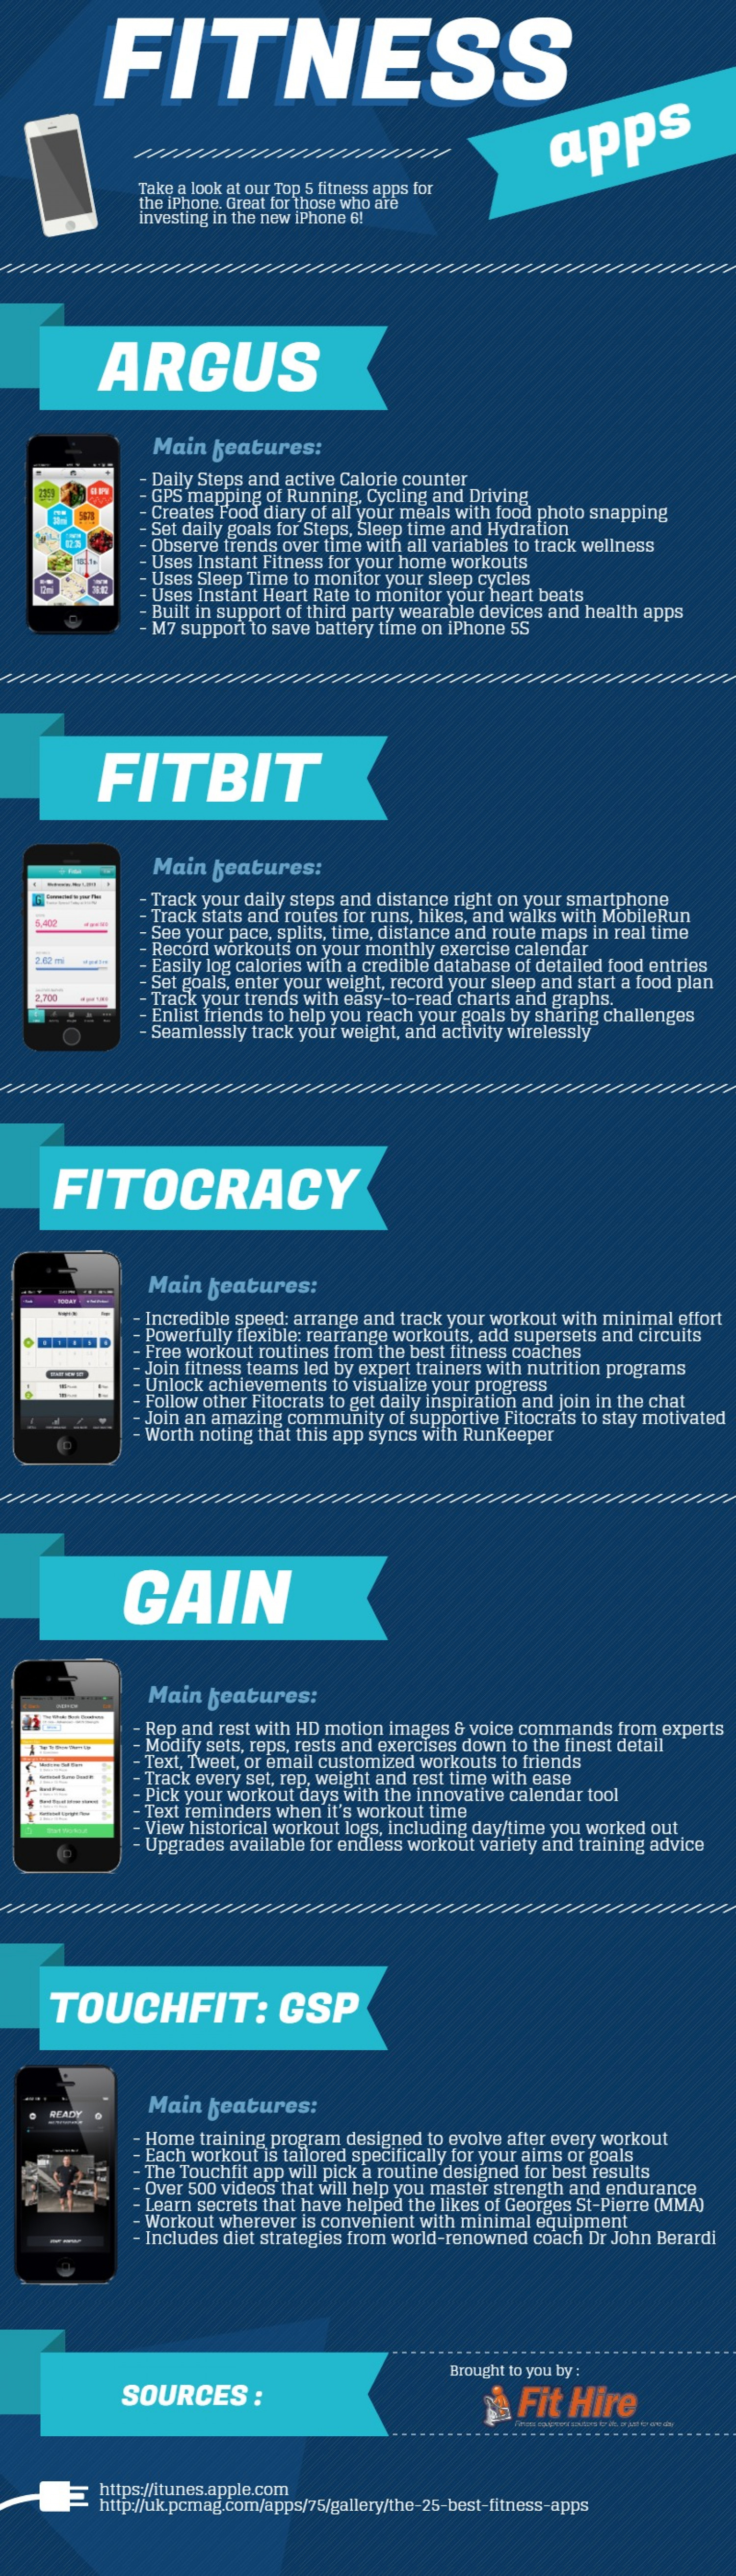 Top 5 Fitness iPhone Apps Infographic